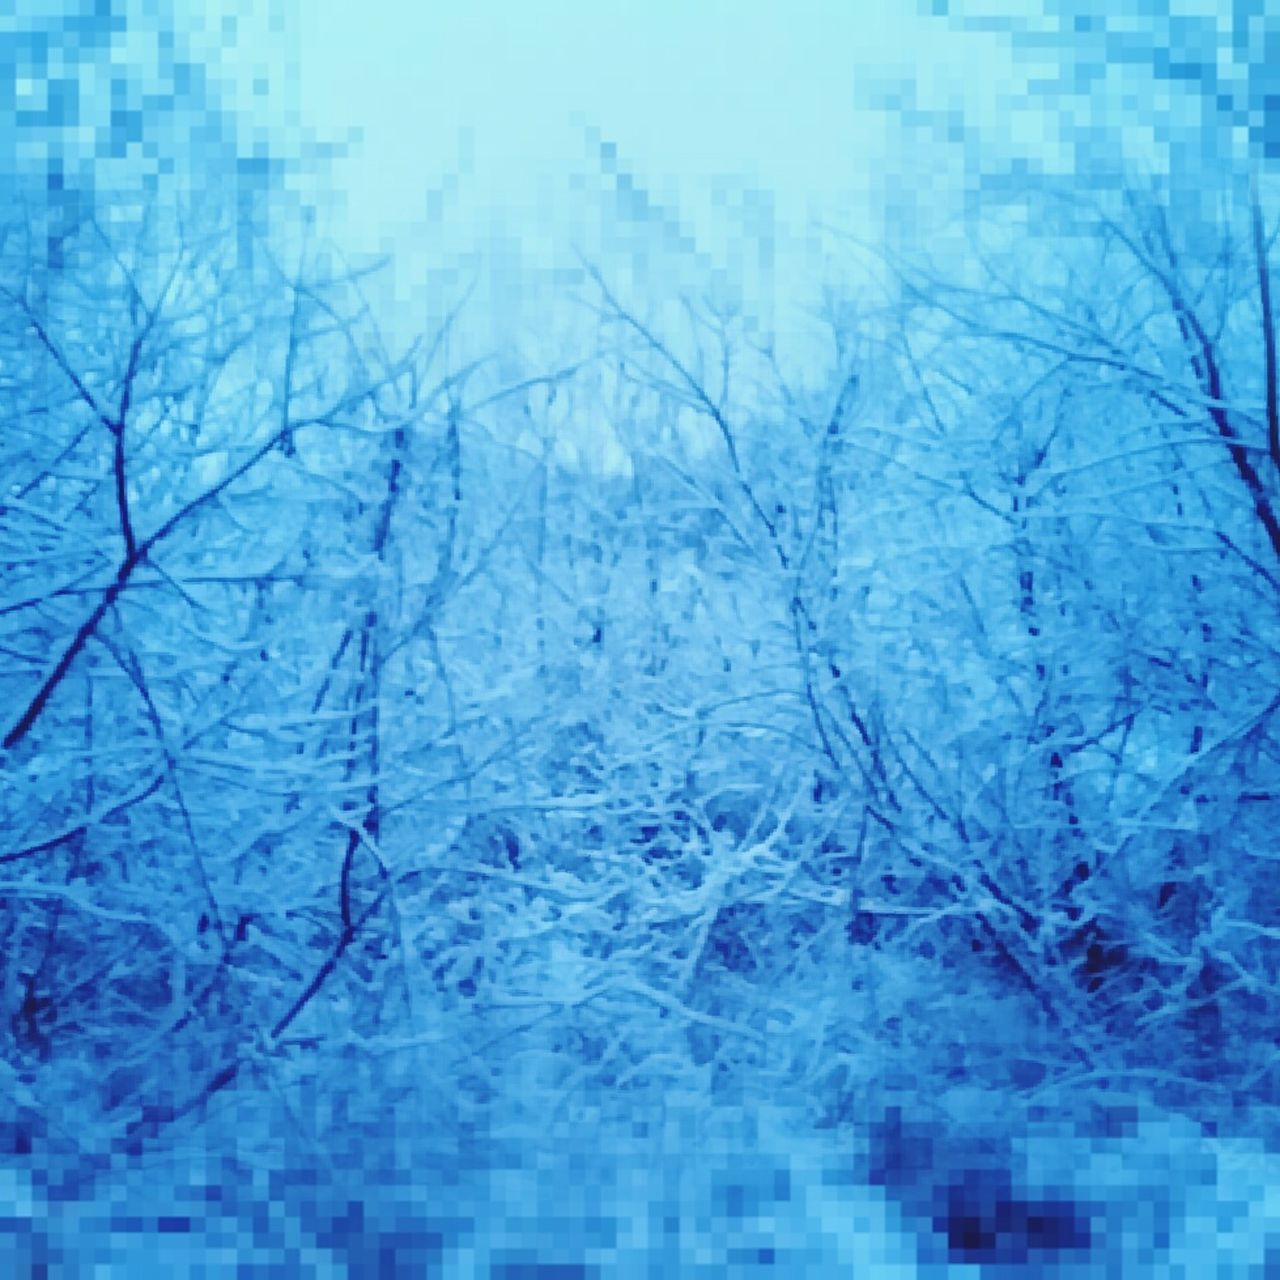 blue, backgrounds, abstract, textured, winter, no people, full frame, nature, snow, close-up, day, outdoors